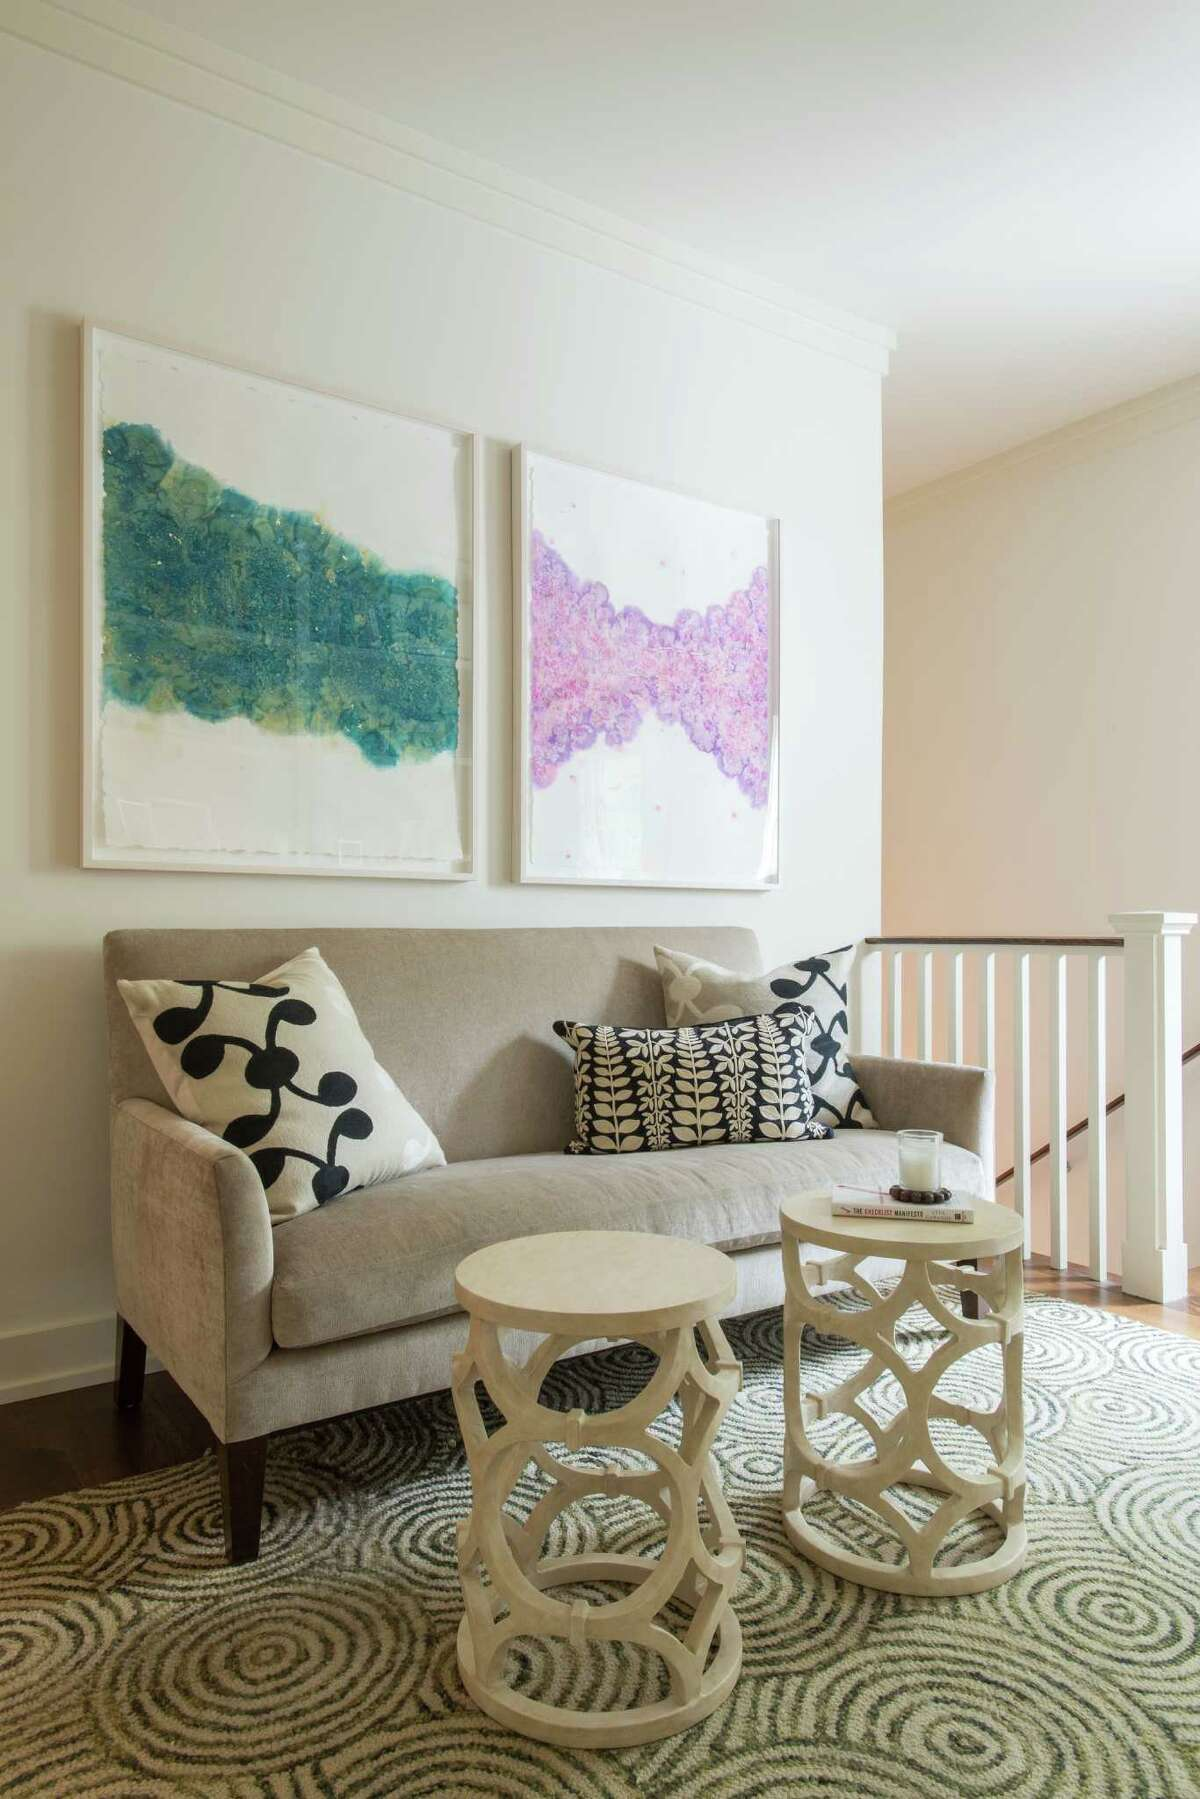 The second floor of this Heights home has an open, broad landing. Designer Linda Eyles put in a loveseat and two small tables, then added color with pieces of art on the walls.